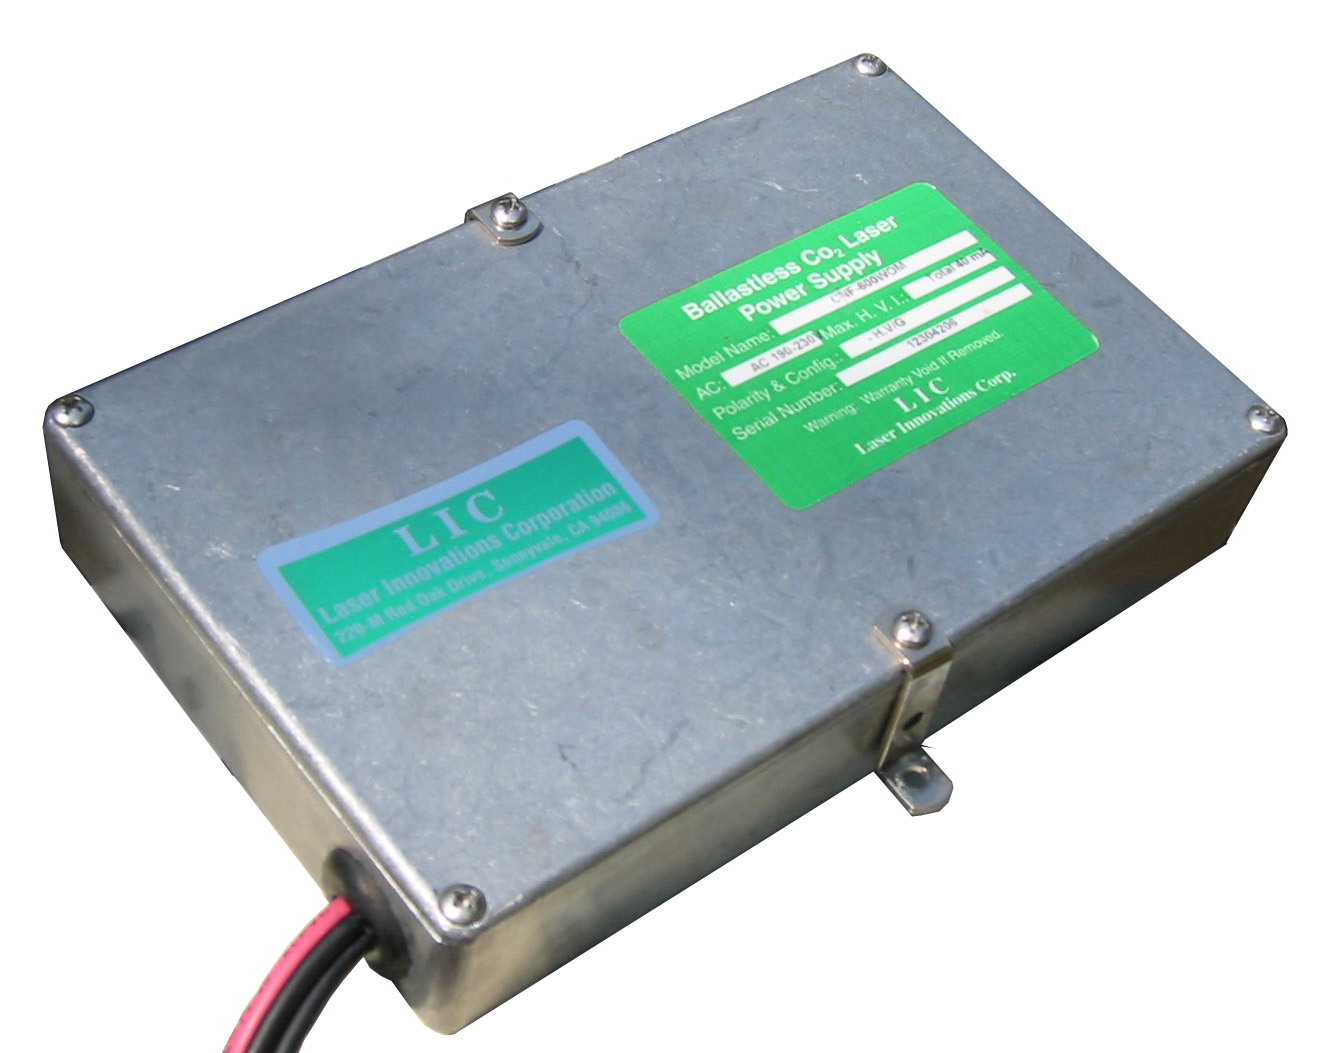 CPZ-200 - Ultra Compact CO2 Laser Power Supply